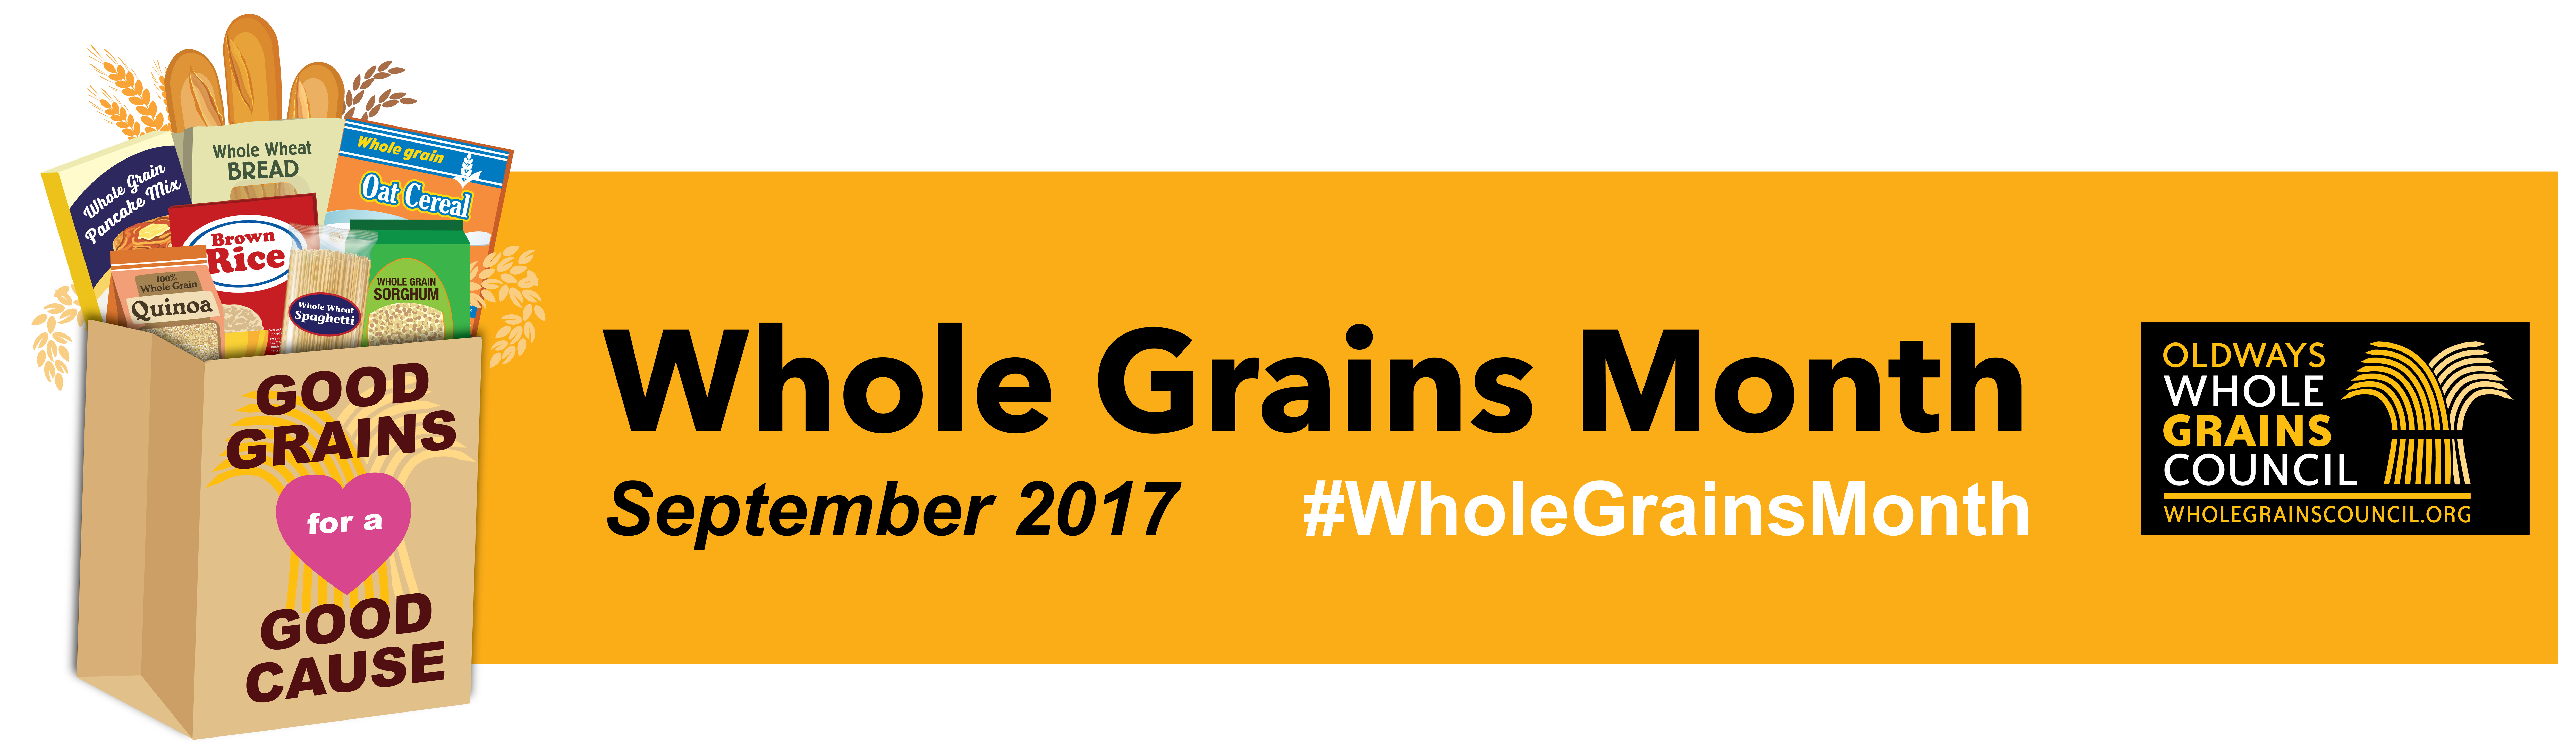 Whole Grains Month banner